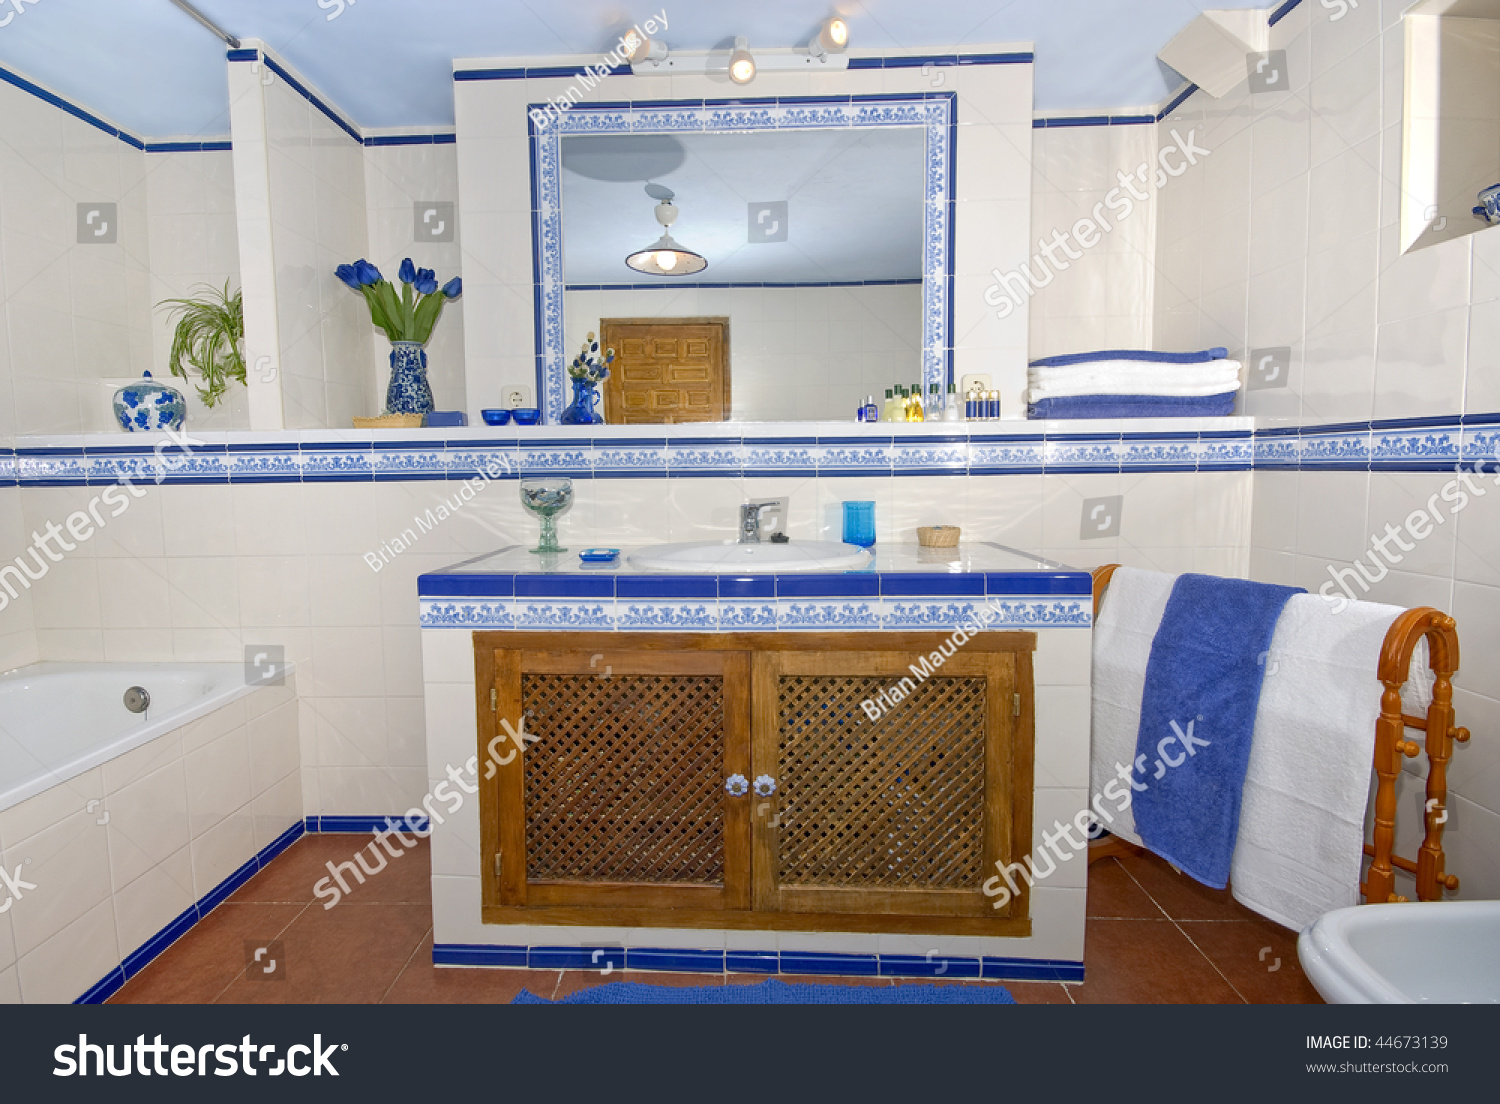 Rustic Spanish Country Style Bathroom White Stock Photo